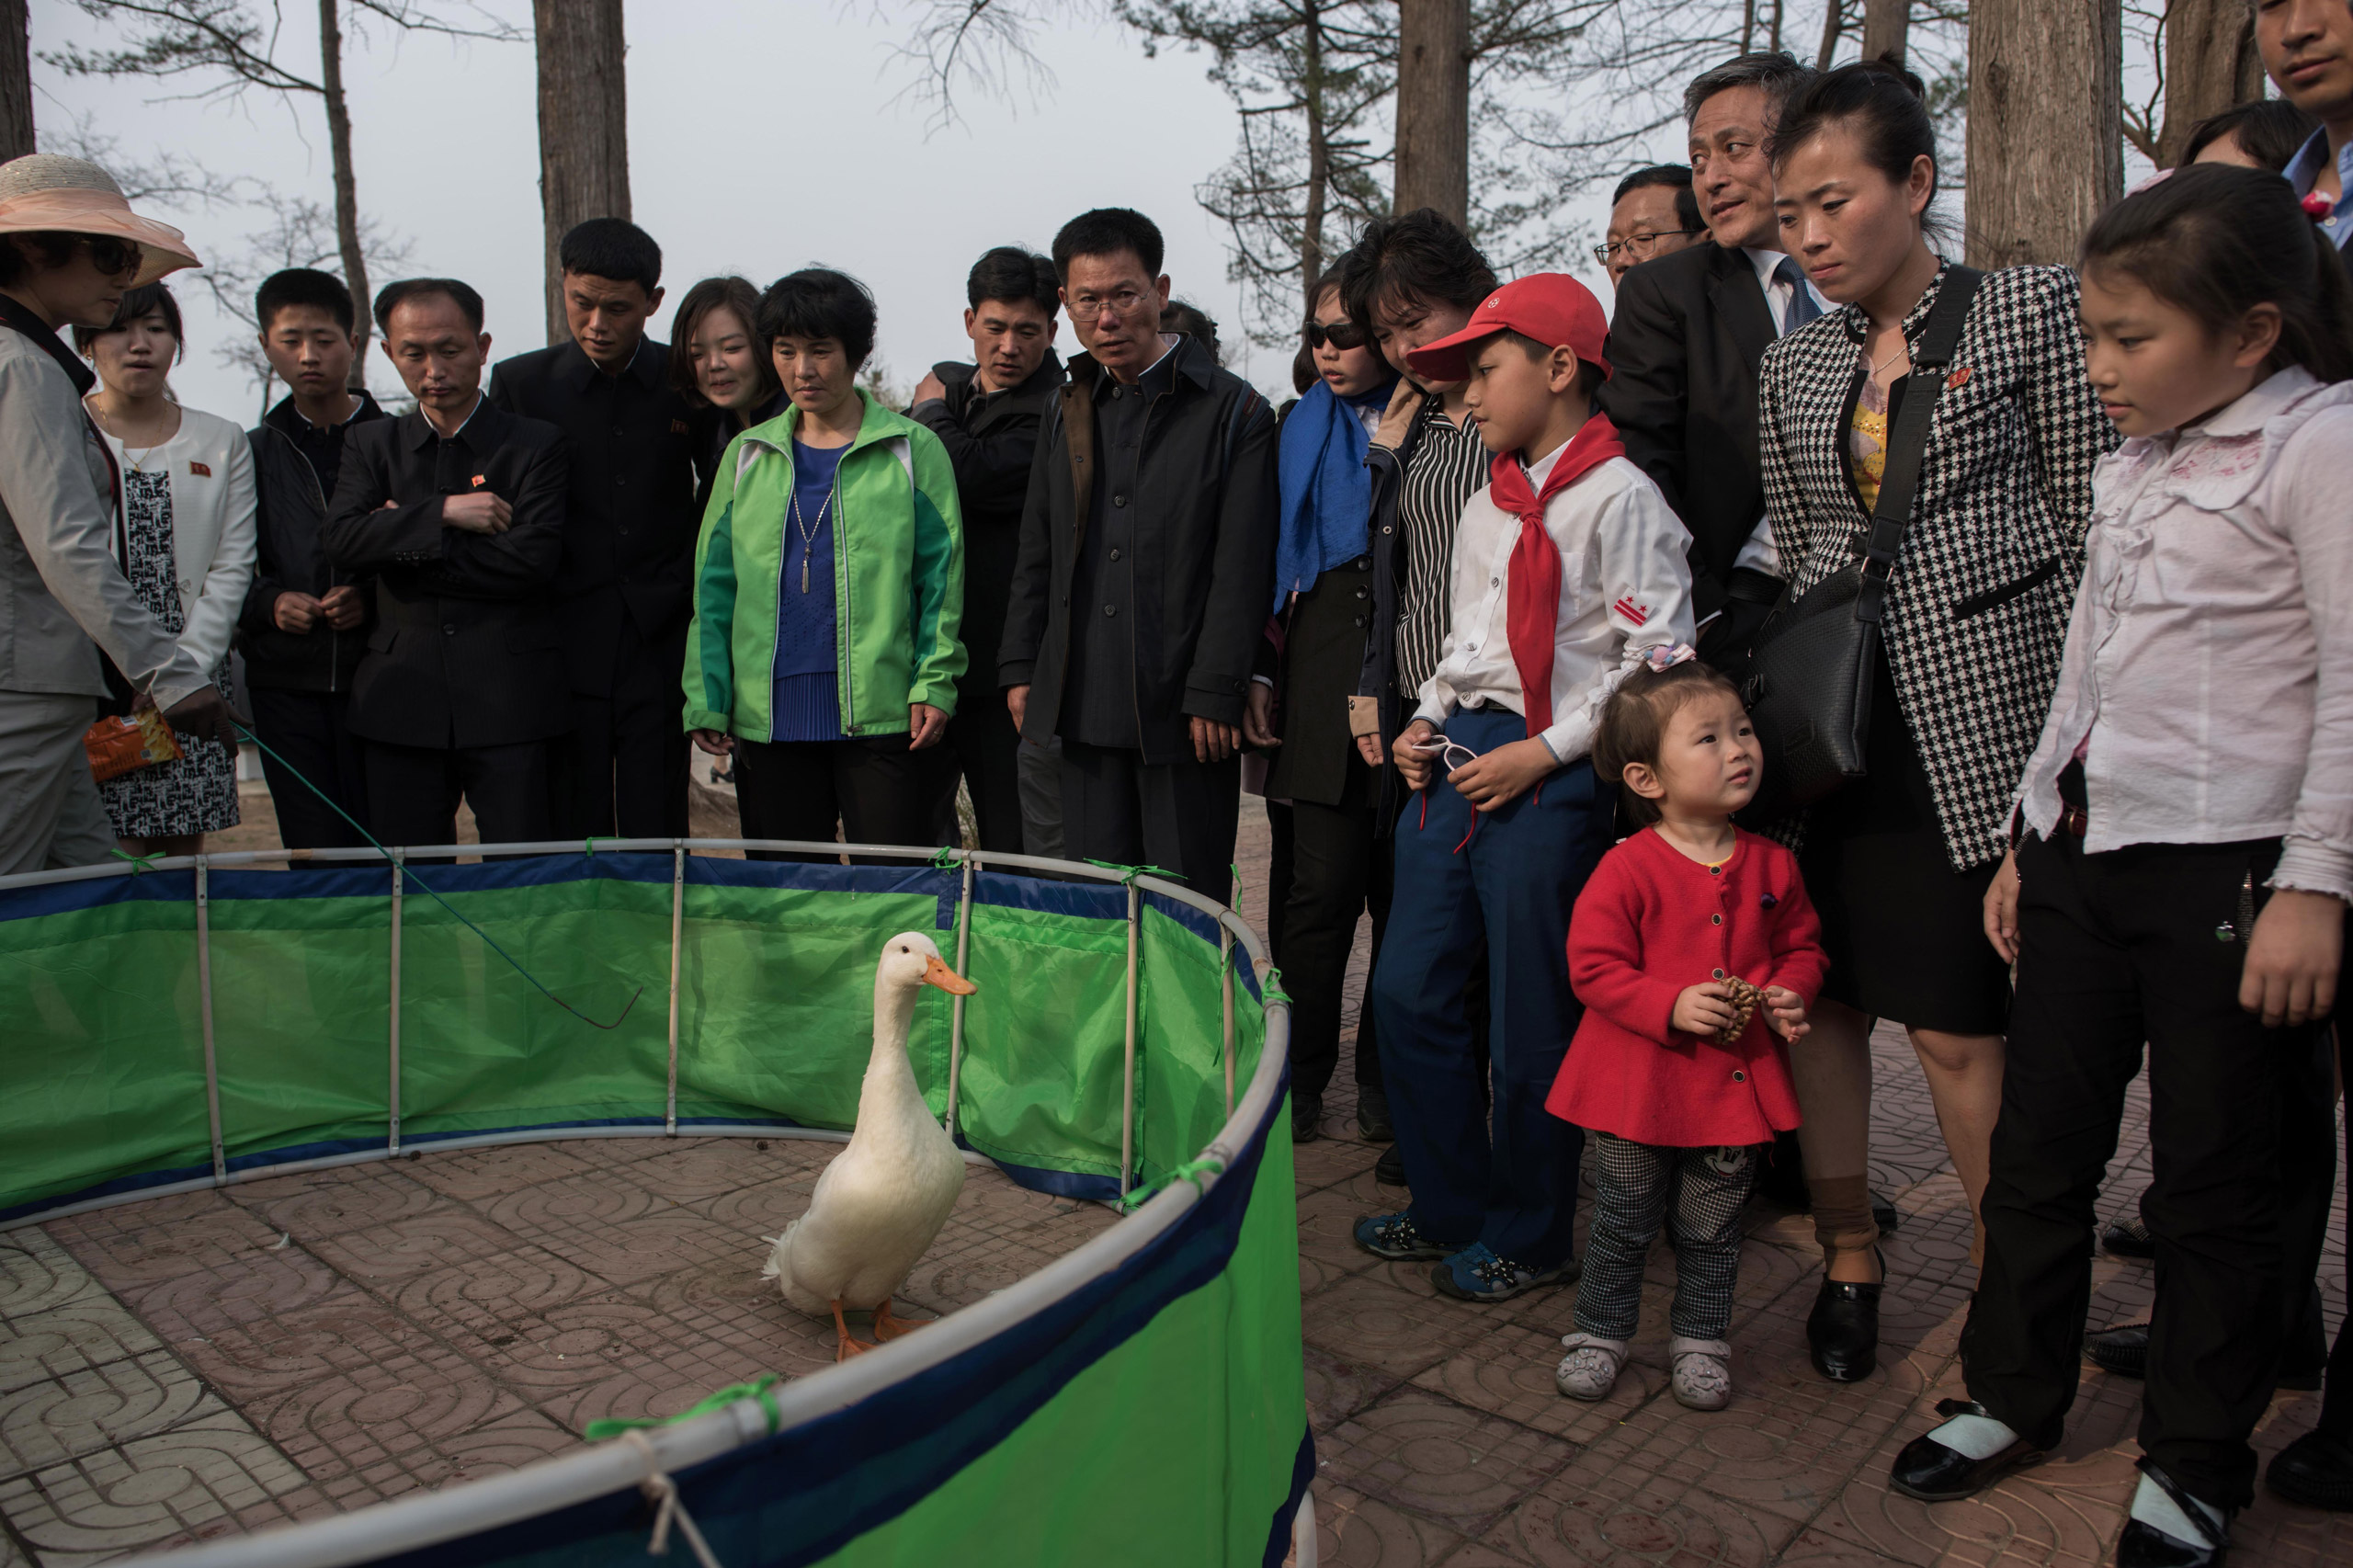 People gather around a pen for a game involving a goose in which contestants attempt to throw rings around its neck at the Central Zoo in Pyongyang on April 16, 2017.